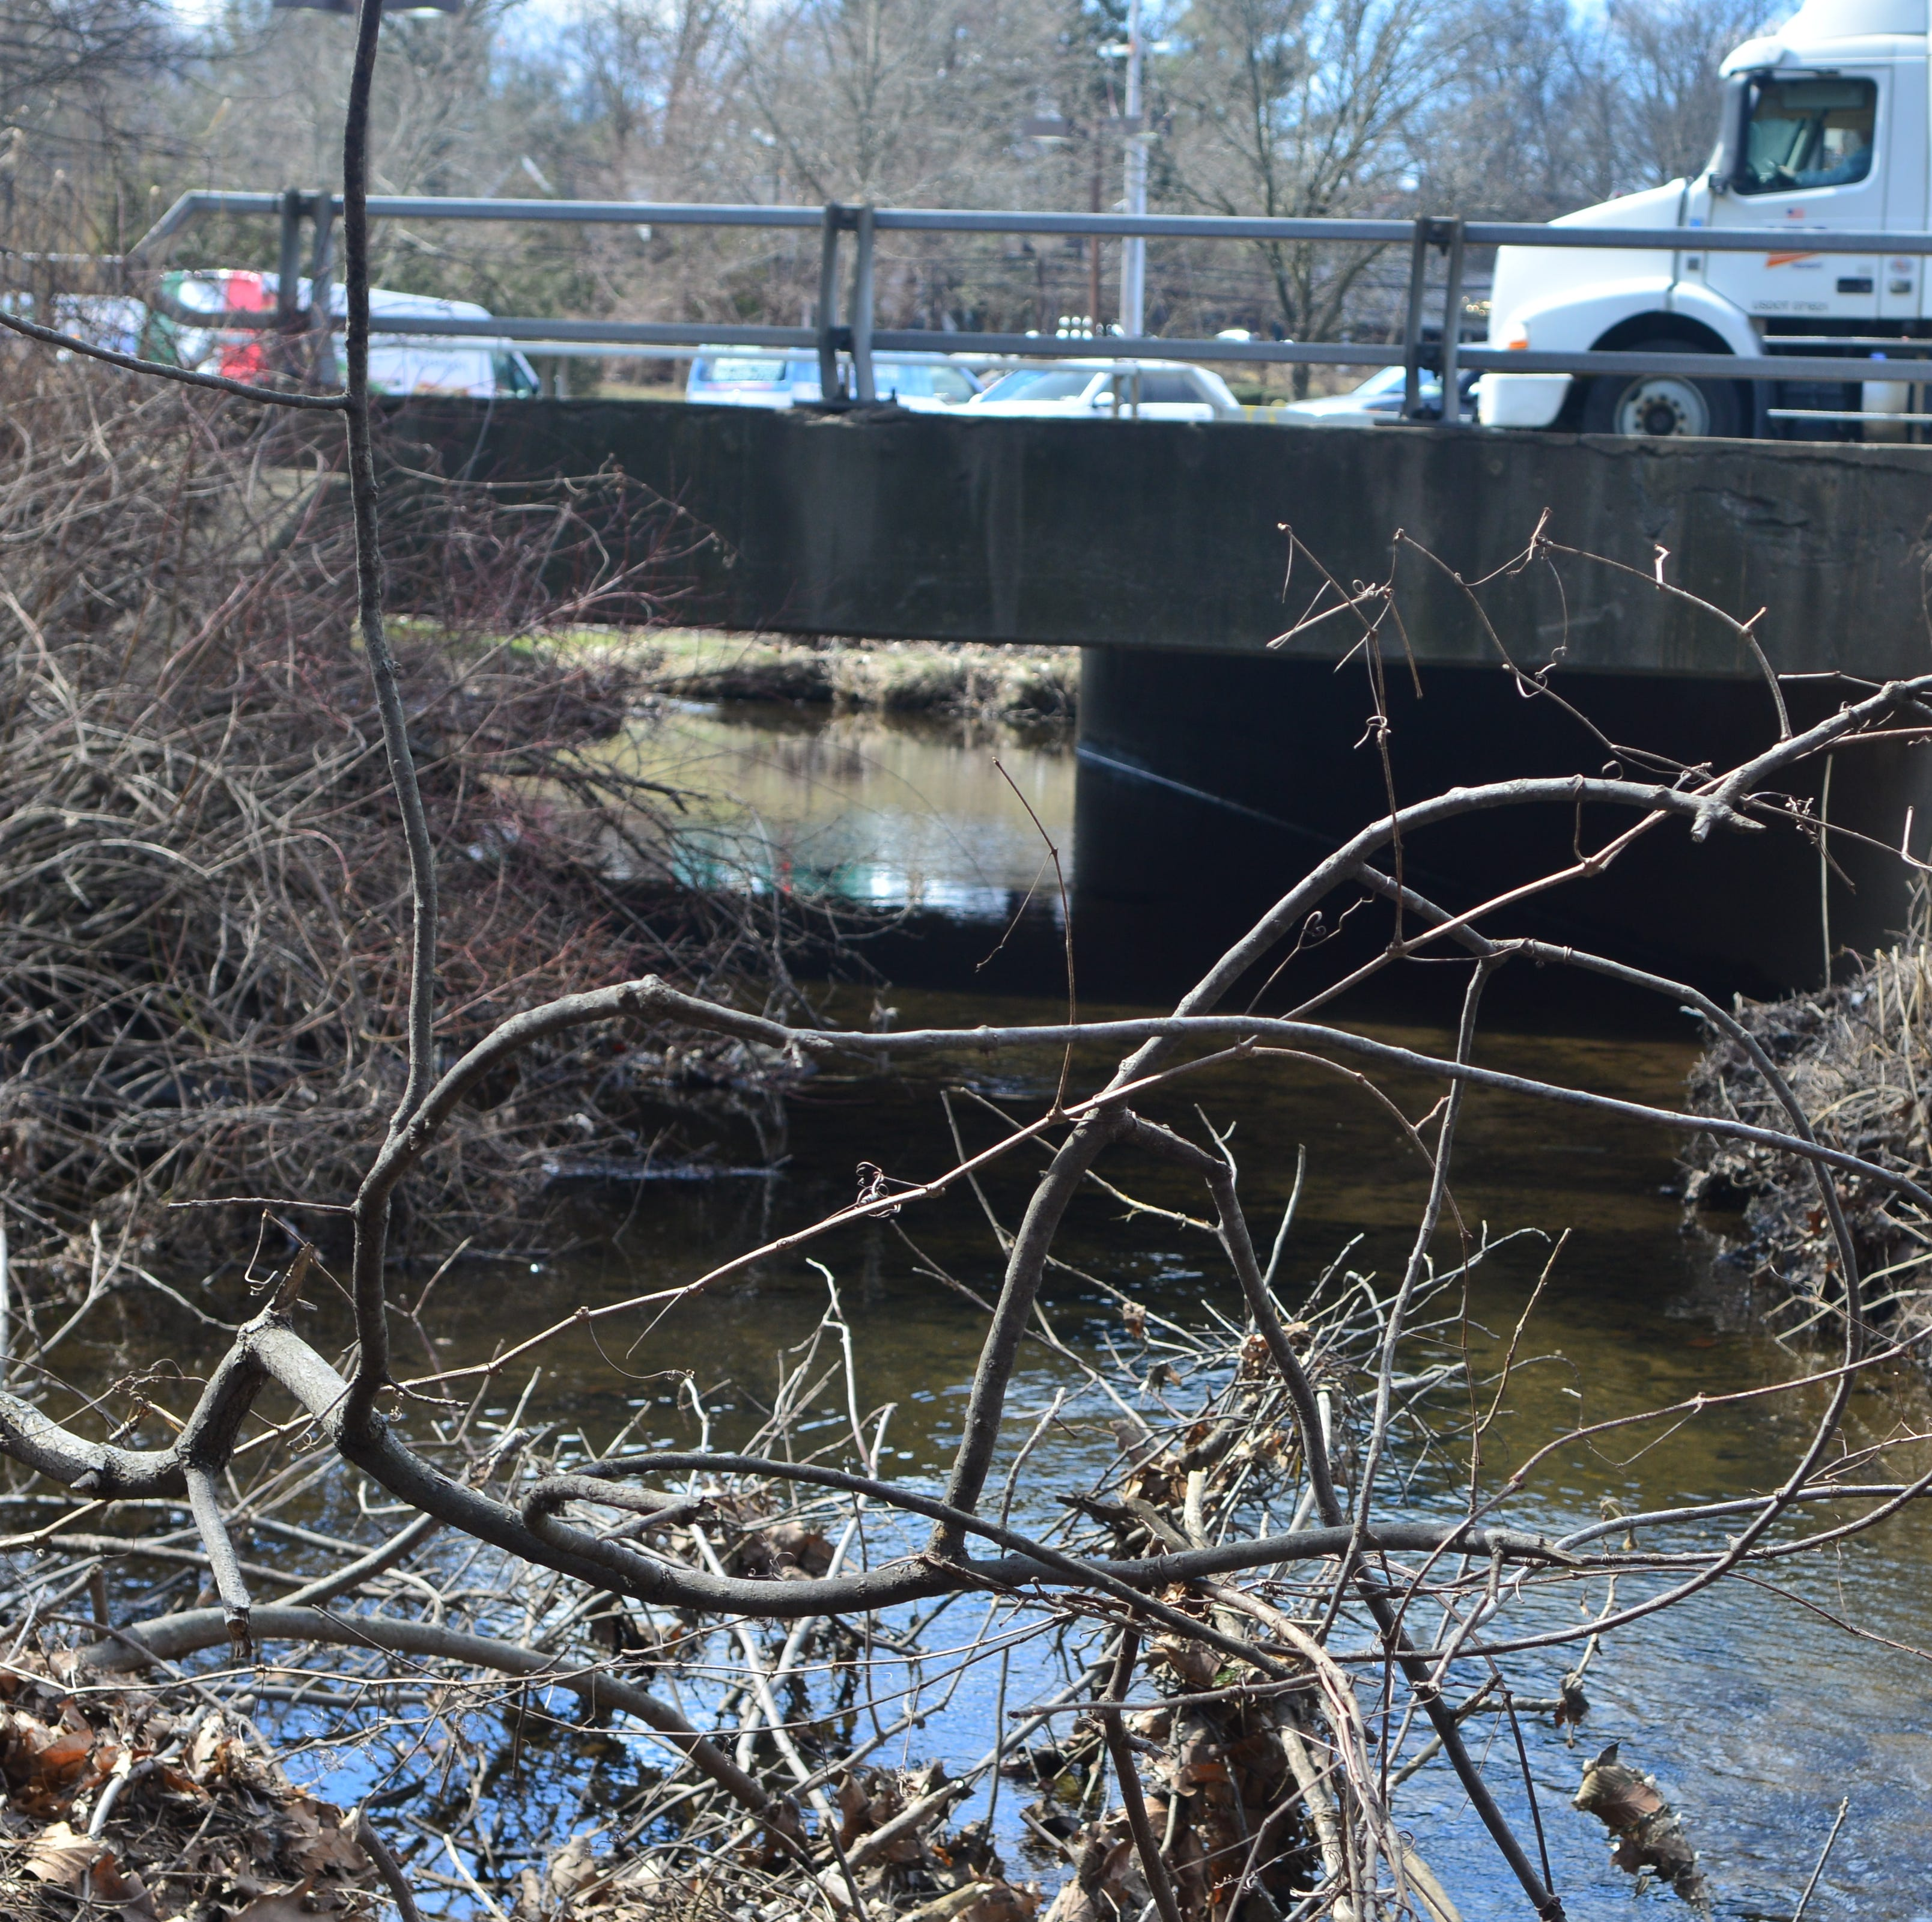 Sparkill Creek: The Shame of the Hudson